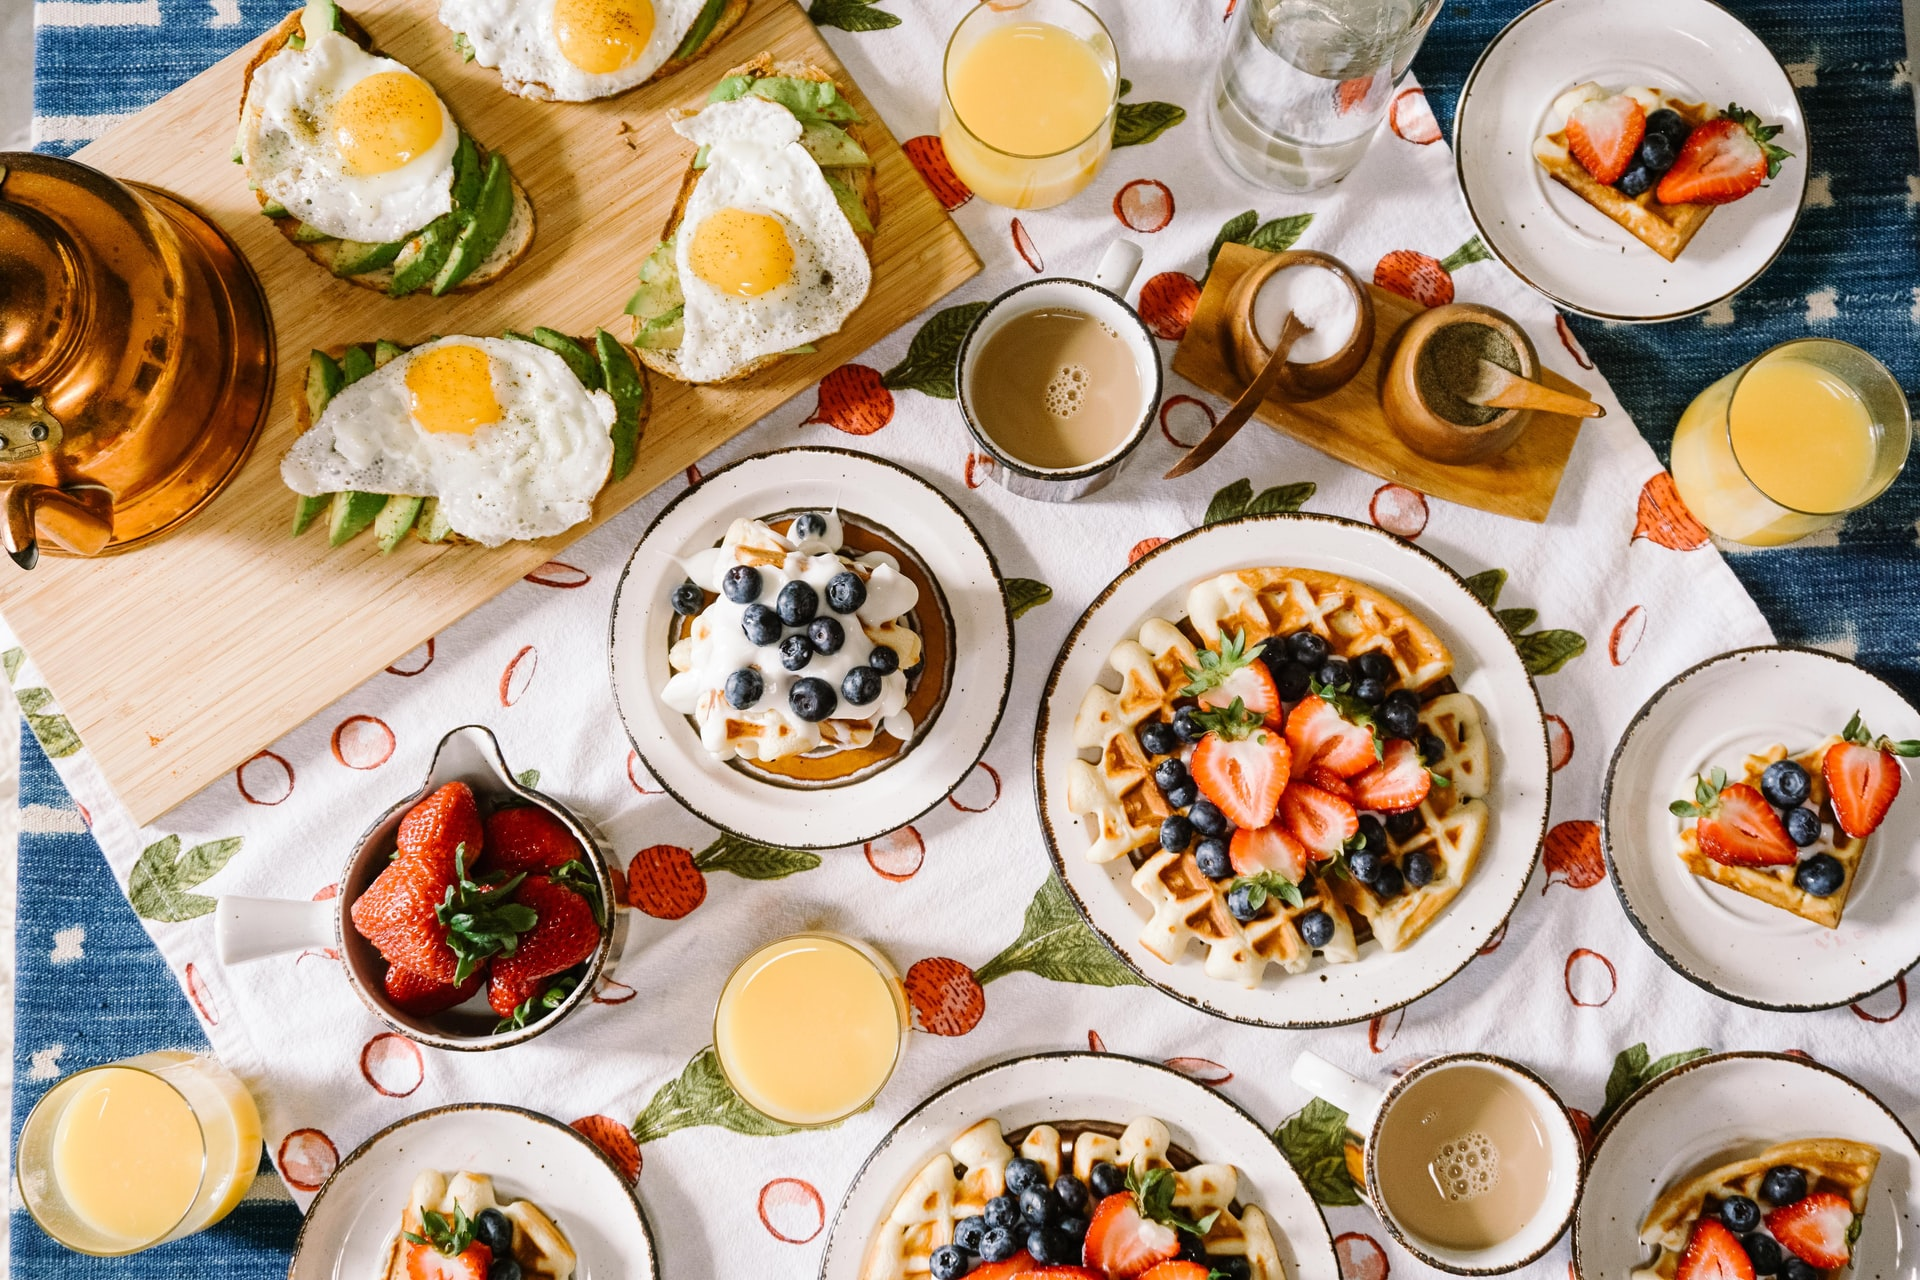 Unconventional Brunch Recipes to Whip Up This Father's Day at Your Aberdeen Apartment